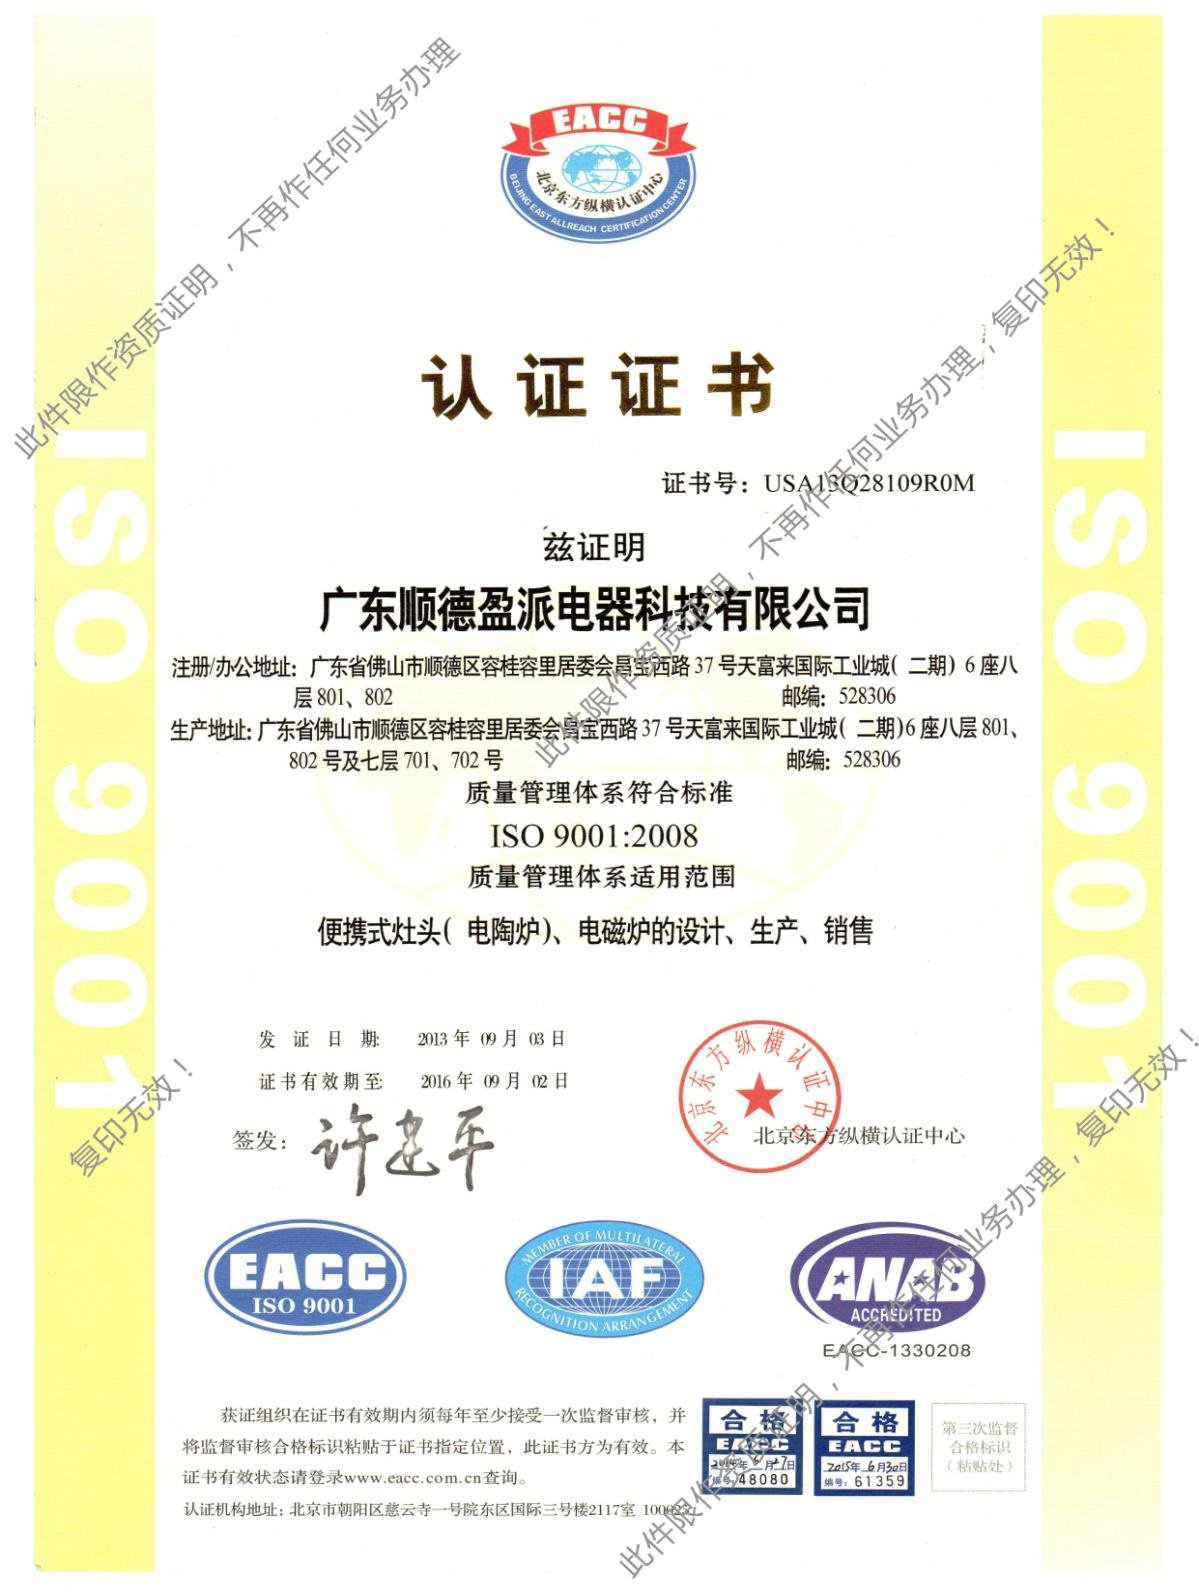 news-Our company successfully passed the ISO9001:2008 Certification Review-WINPAI-img